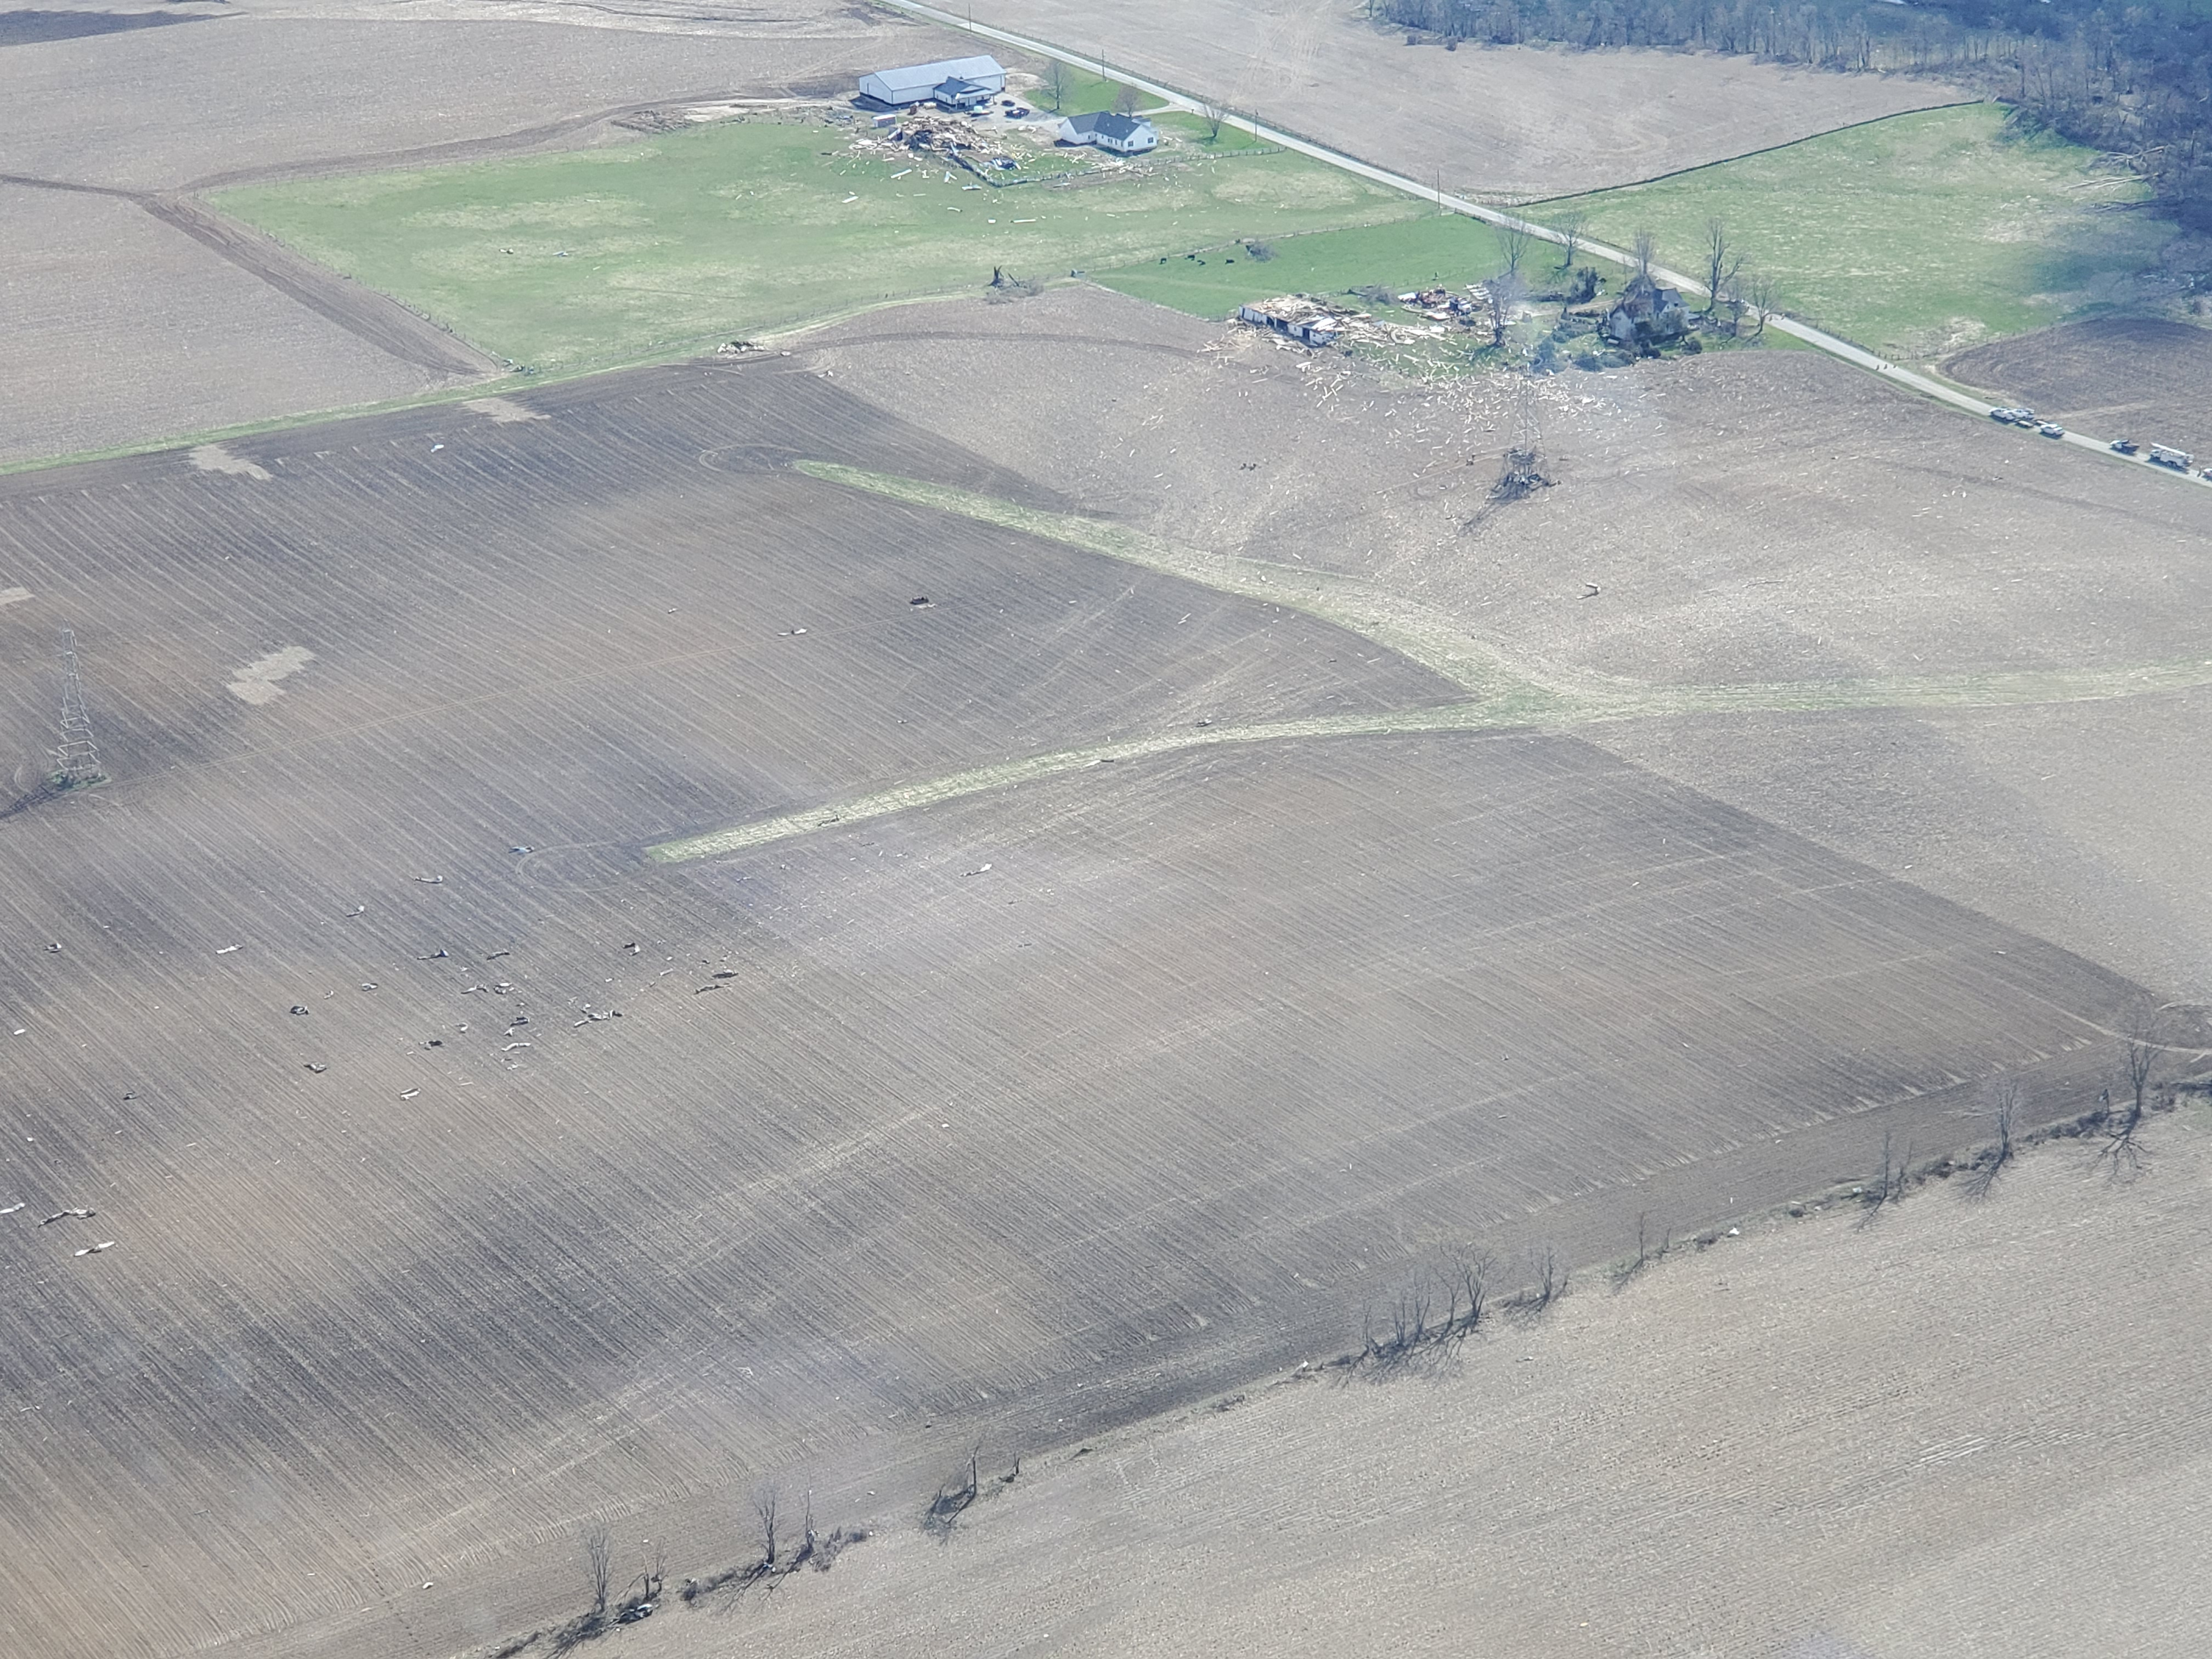 flyover photos courtesy of WEWS Brian Shaw Shelby, OH April 14, 2019